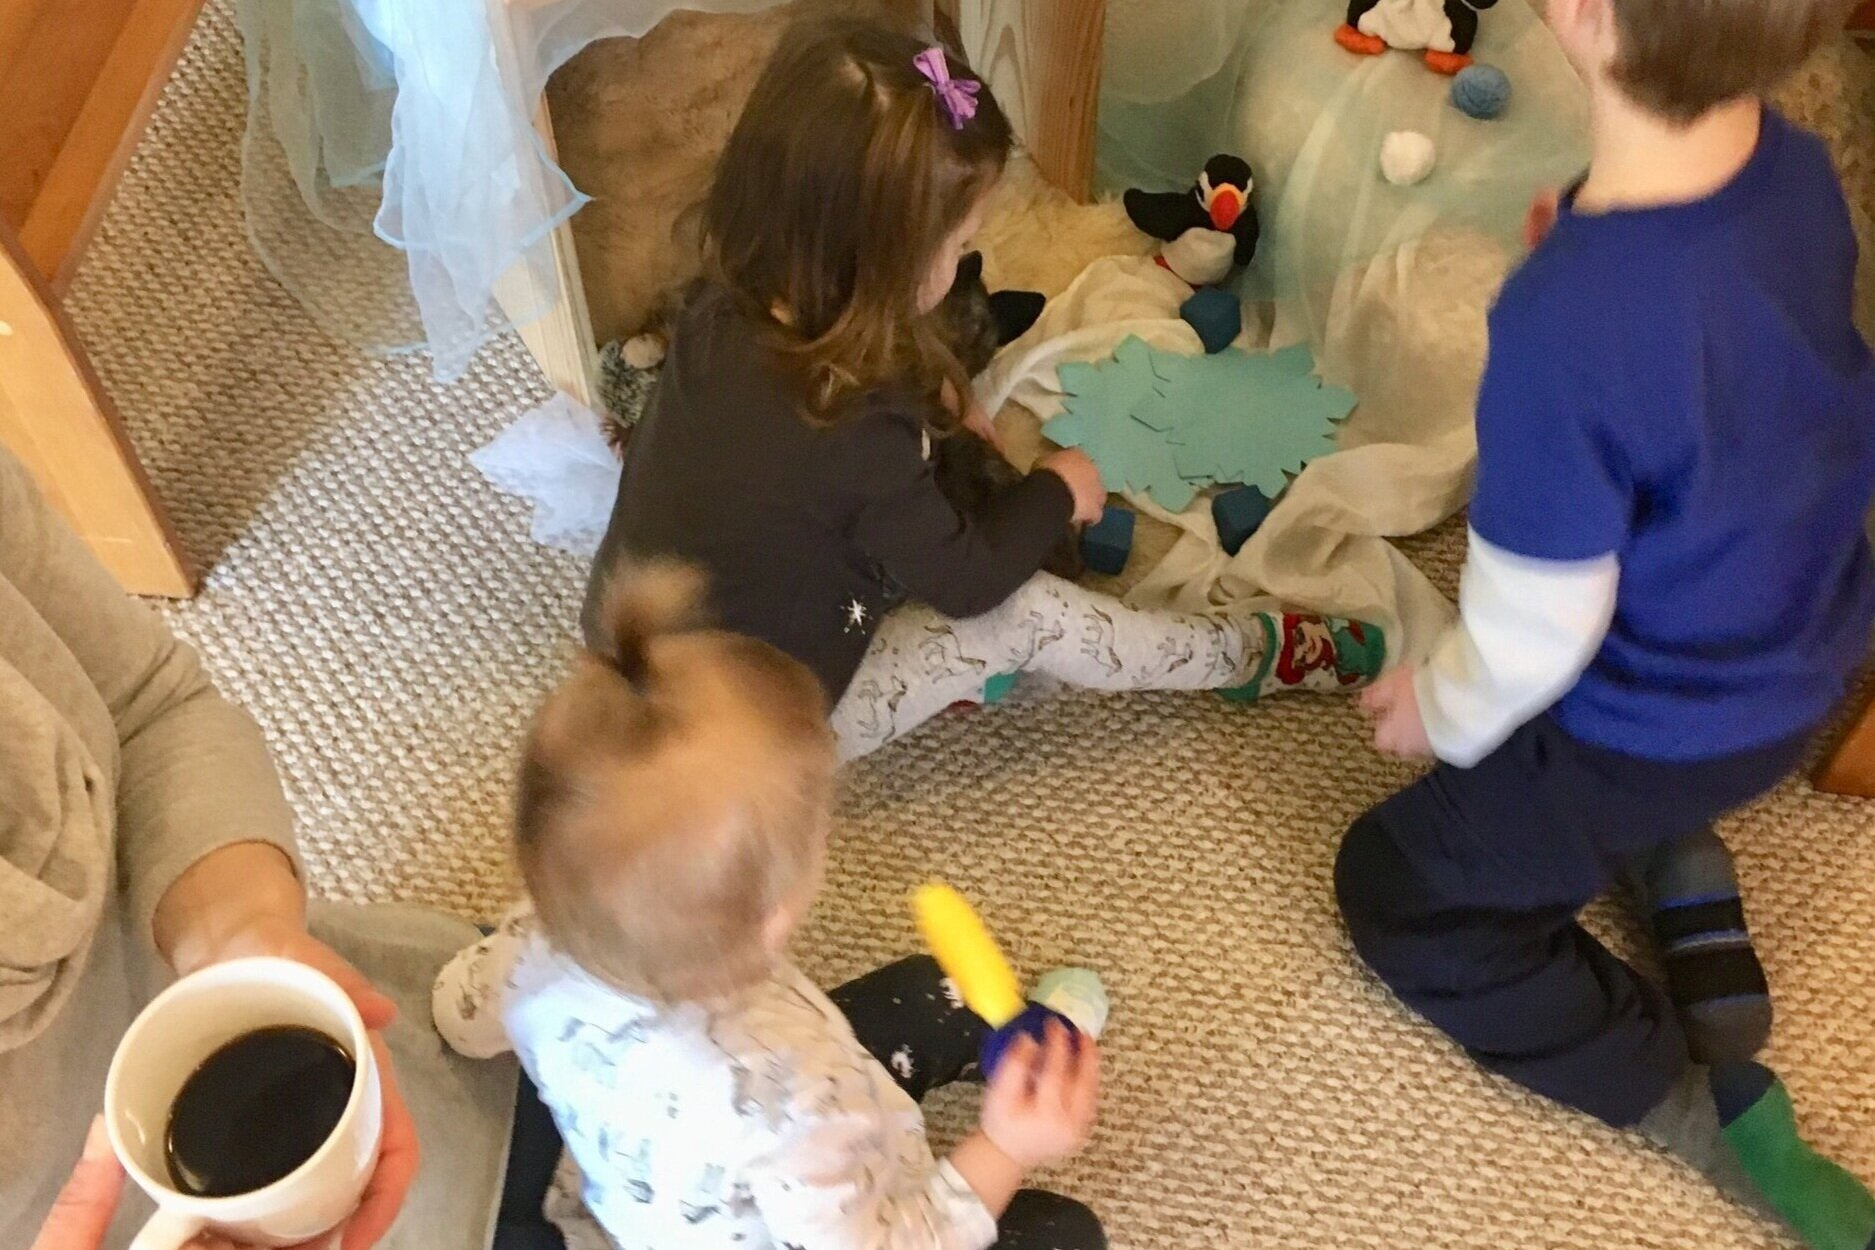 Simplicity Birthday Celebration - Perfectly simple: a relaxing morning of your child's customized open play experience surrounded by loved ones. An ideal option for children turning one or two—particularly those without older siblings. *$250